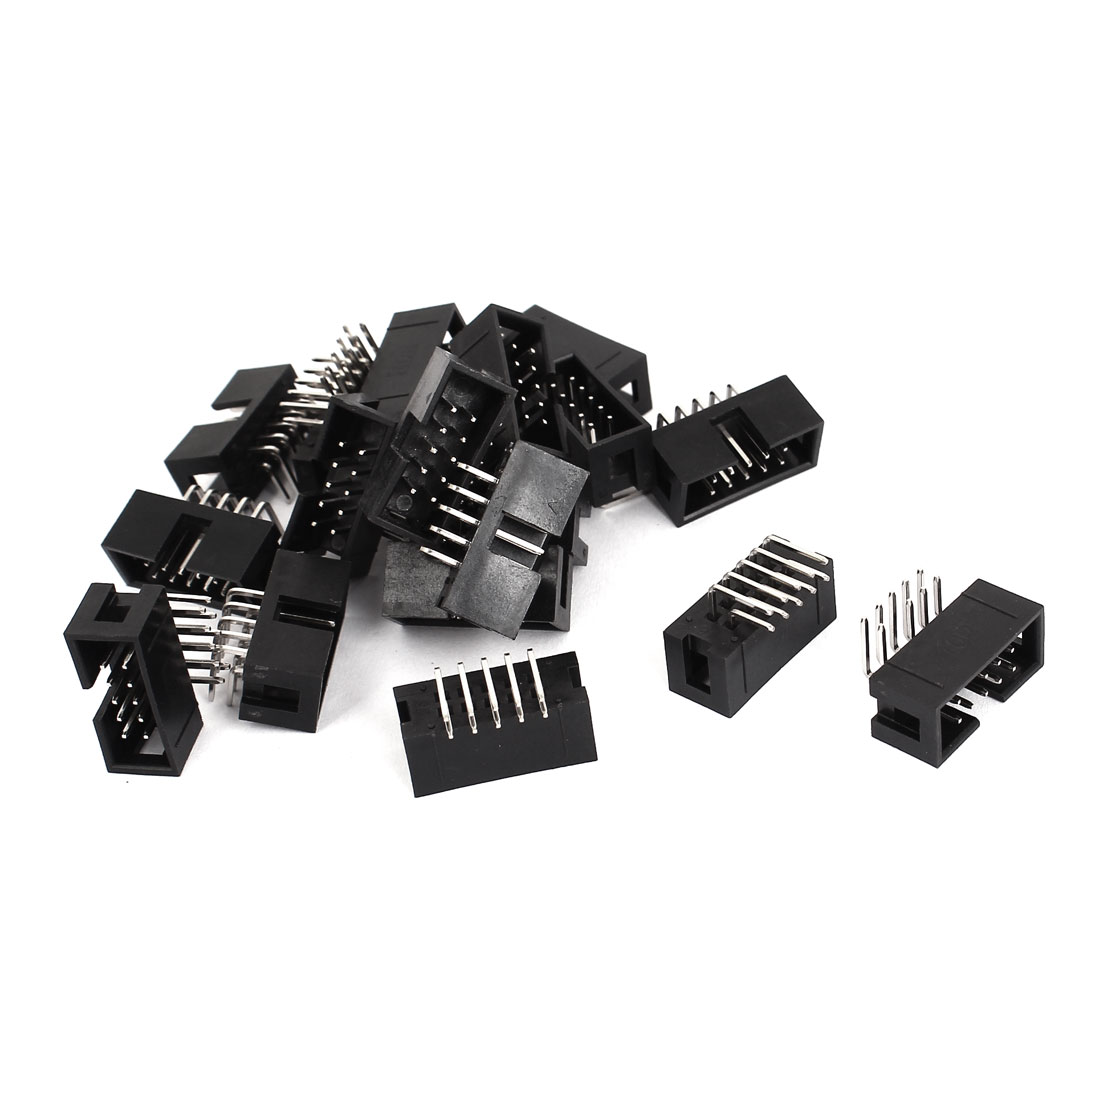 18 Pcs Right Angle 10pins 2.54mm Pitch IDC Box Pin Headers Connectors